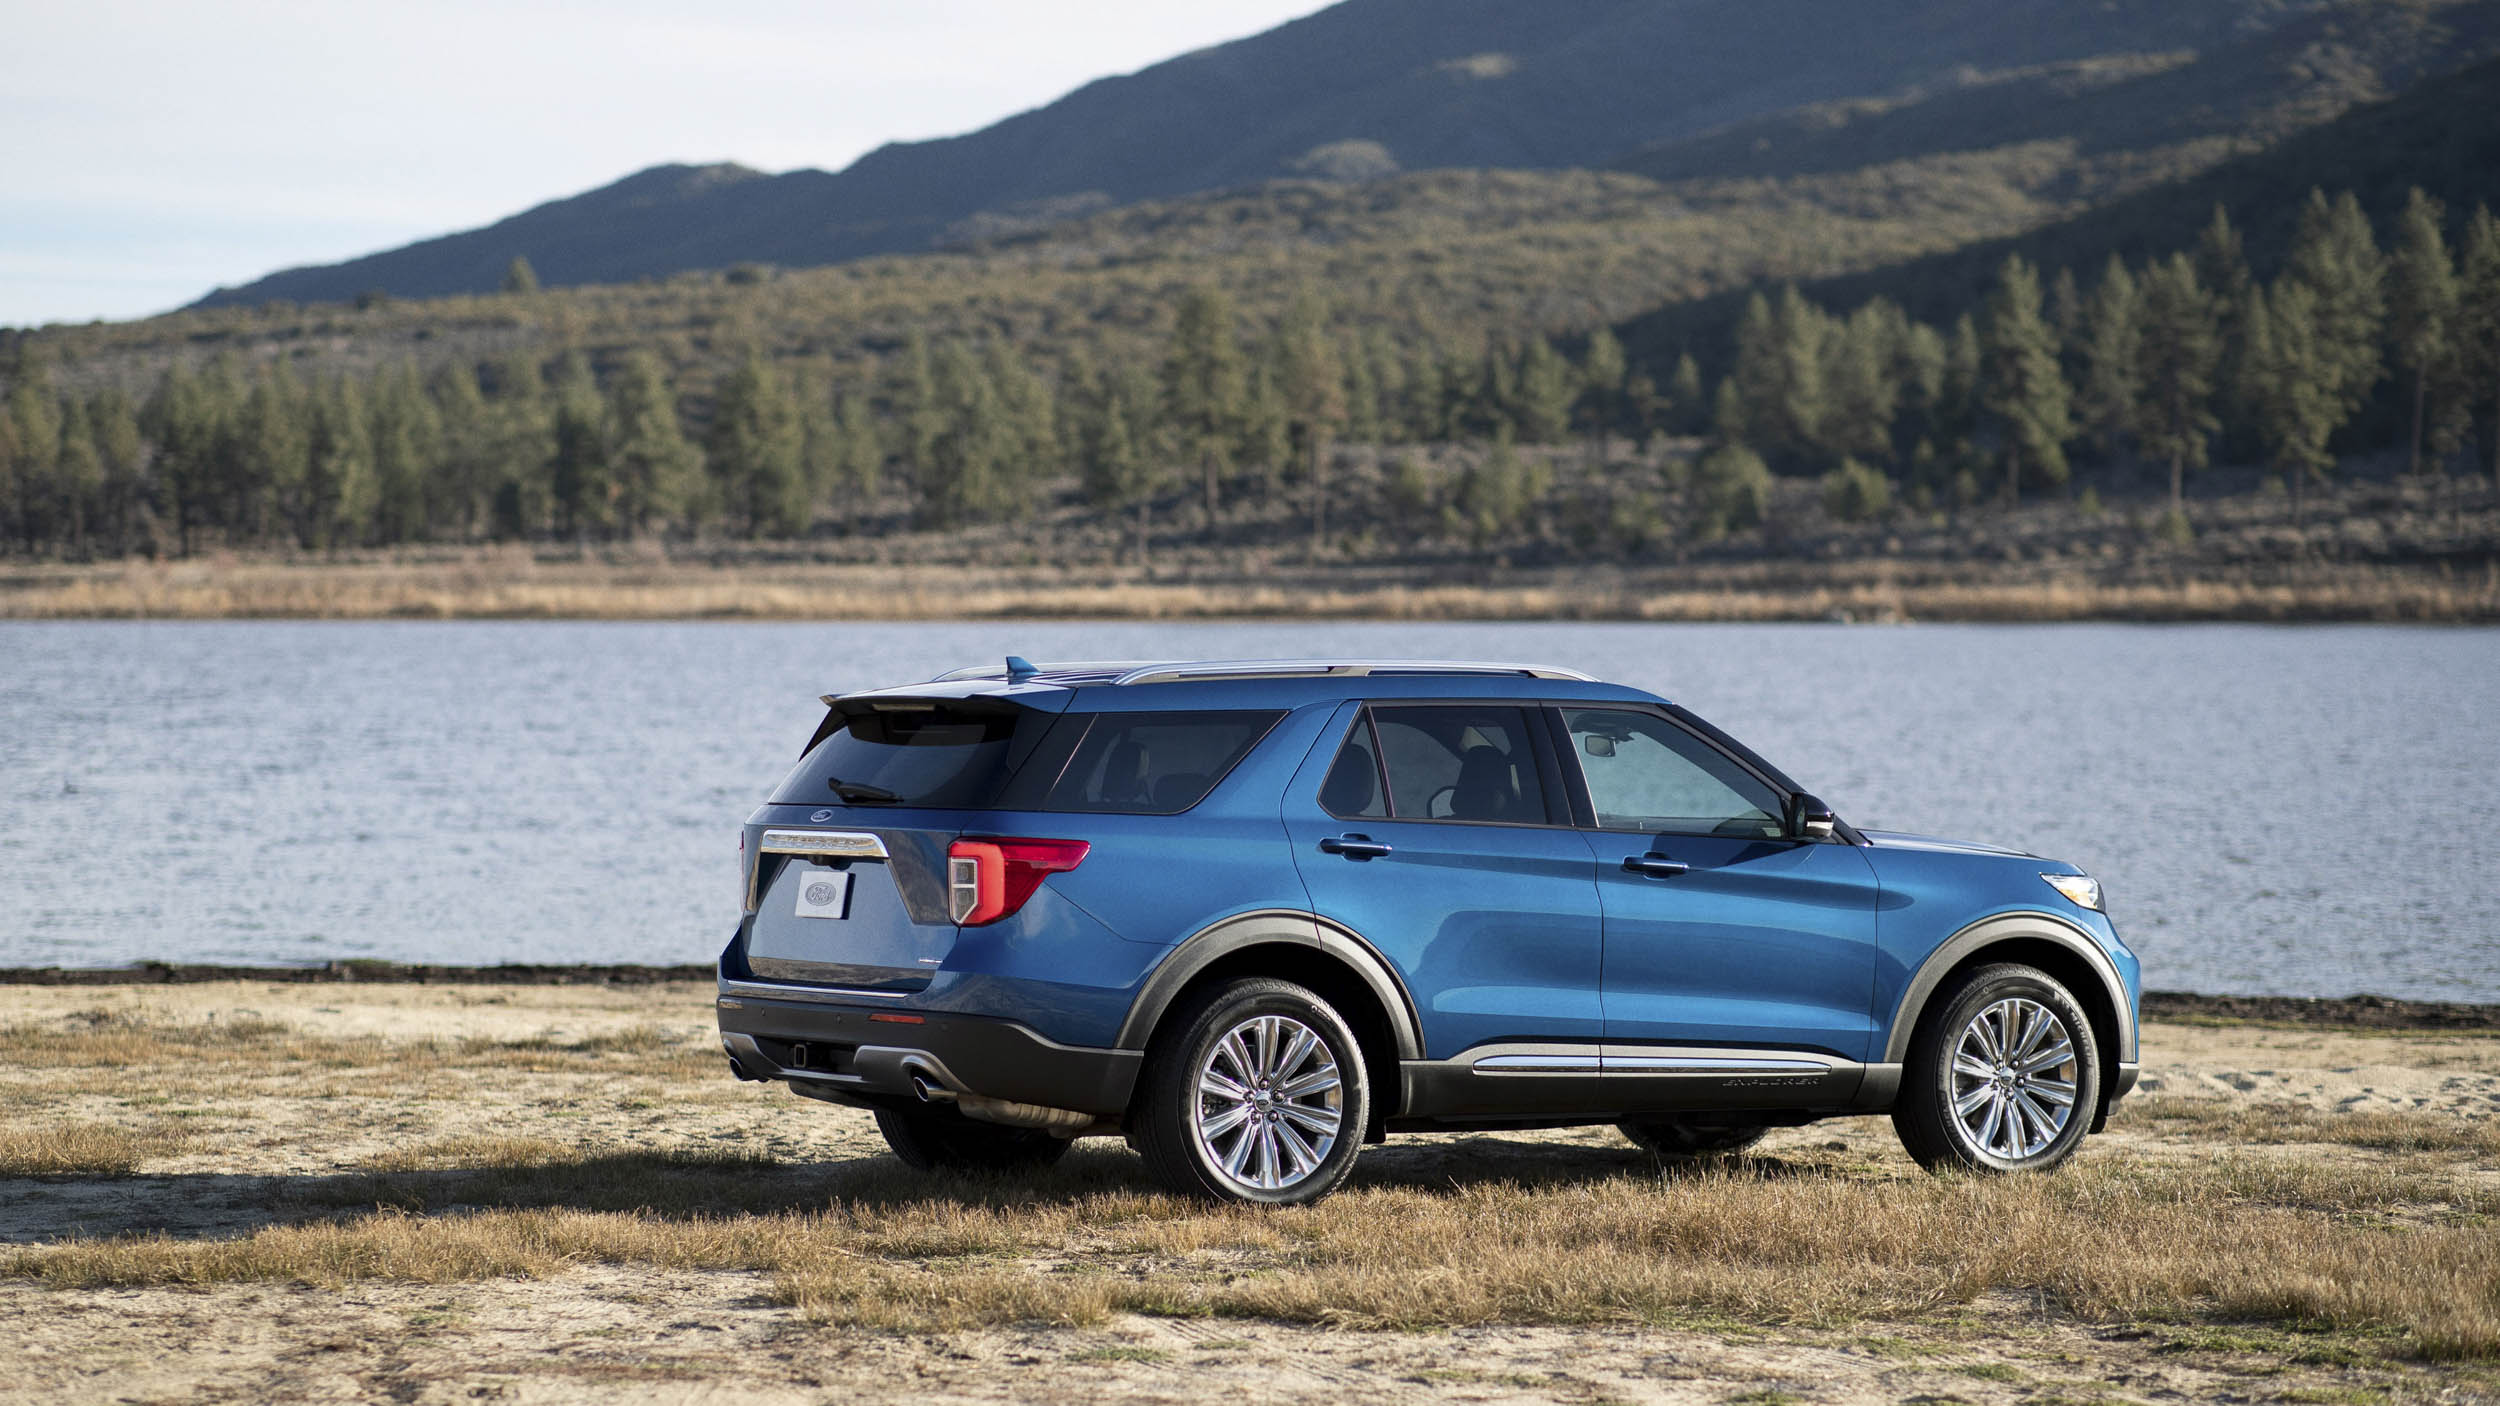 2020 Ford Explorer Hybrid rear 3/4